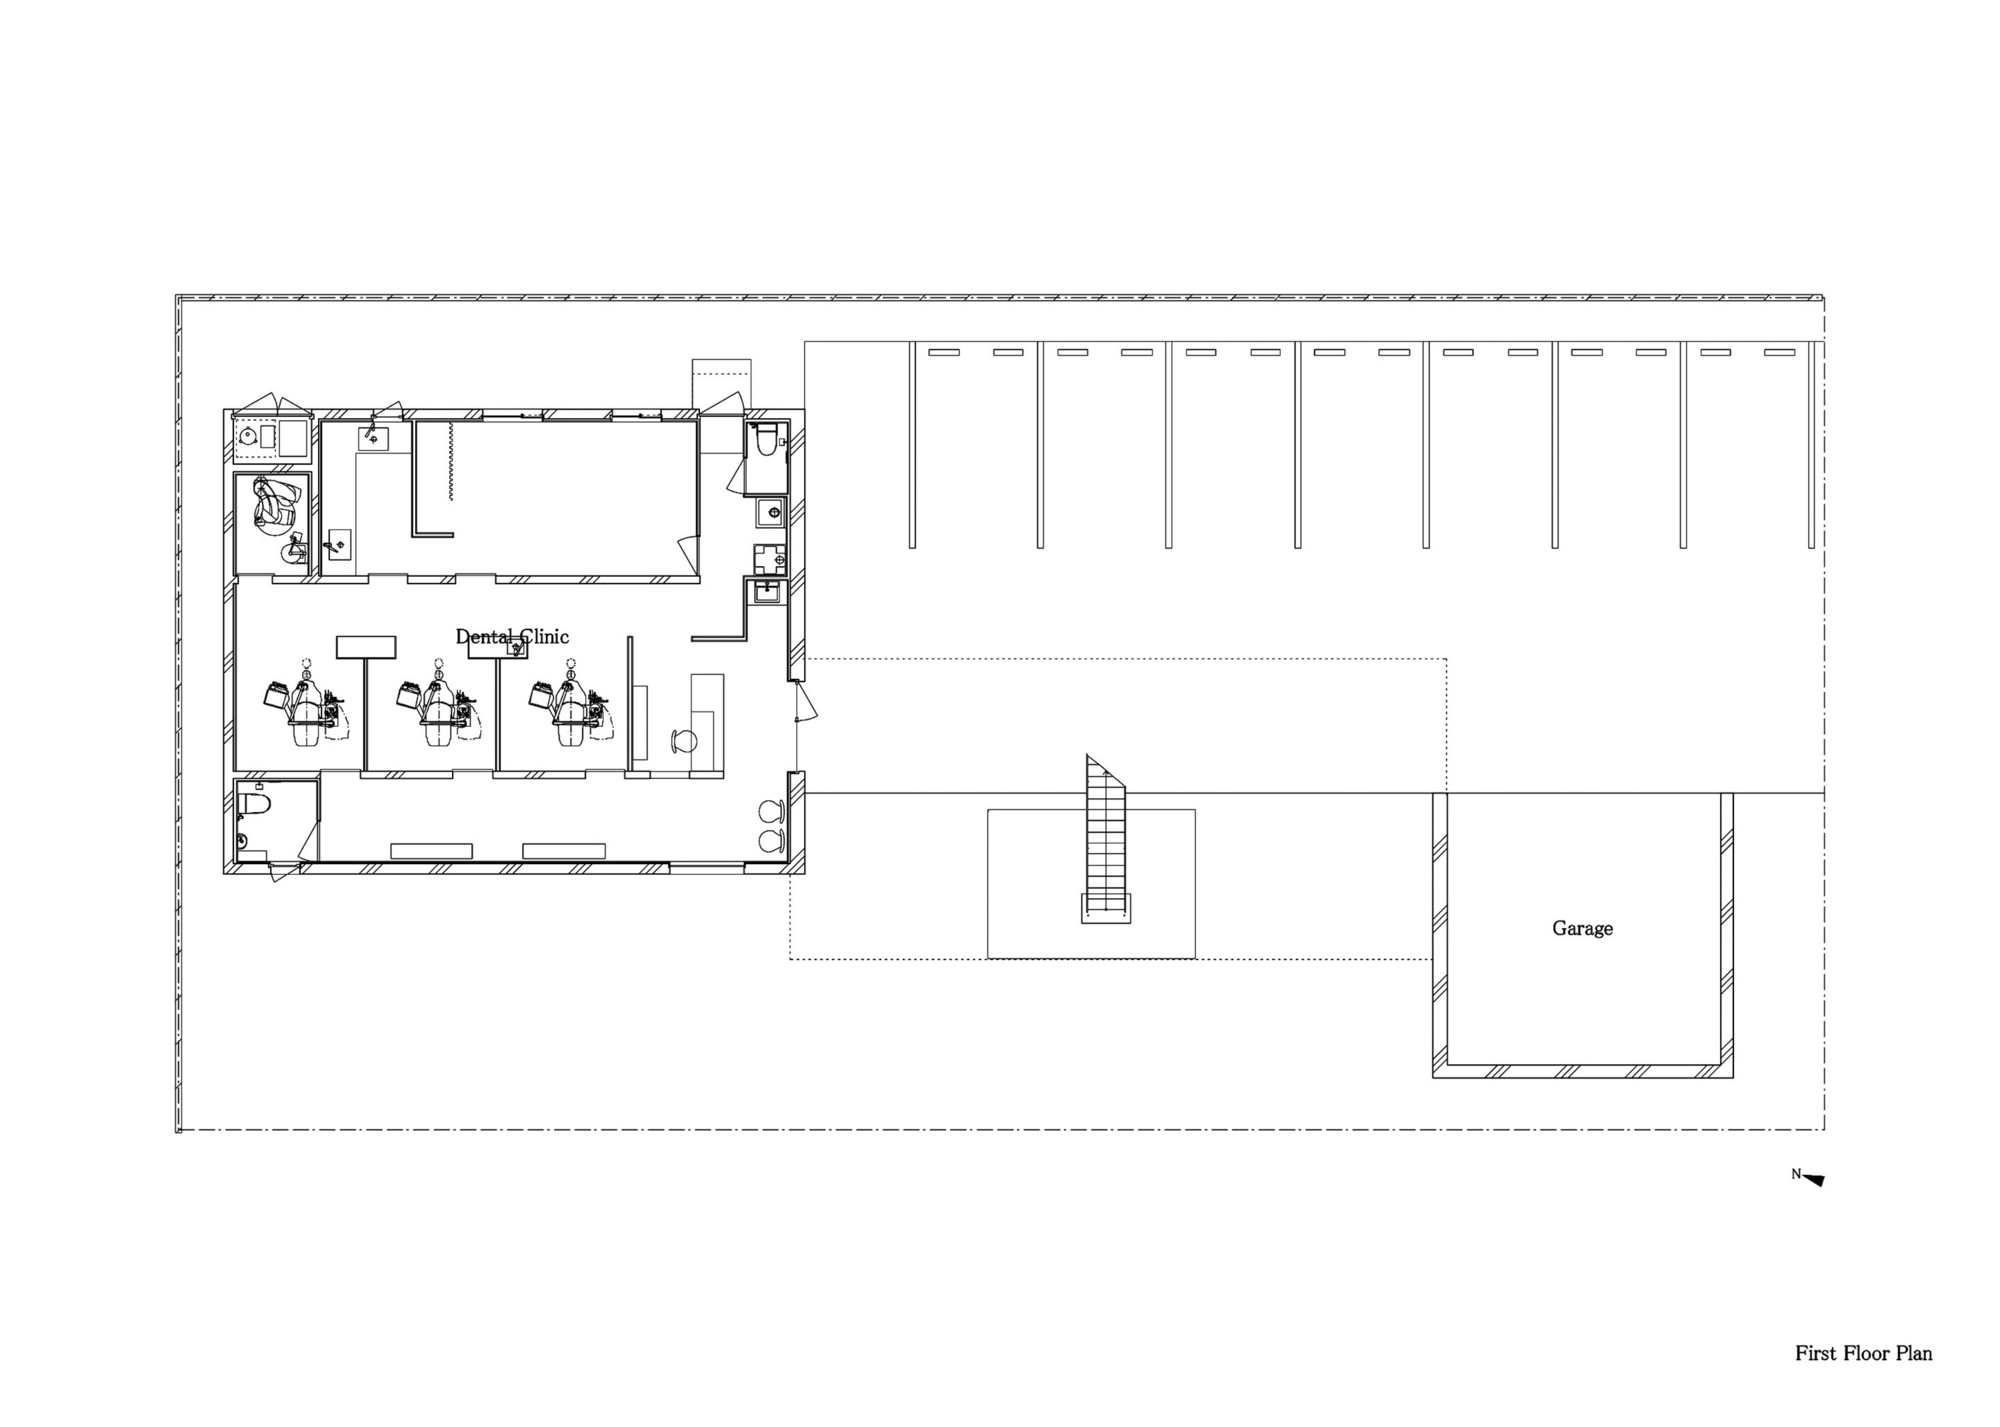 medium resolution of nagasawa dental clinic first floor plan